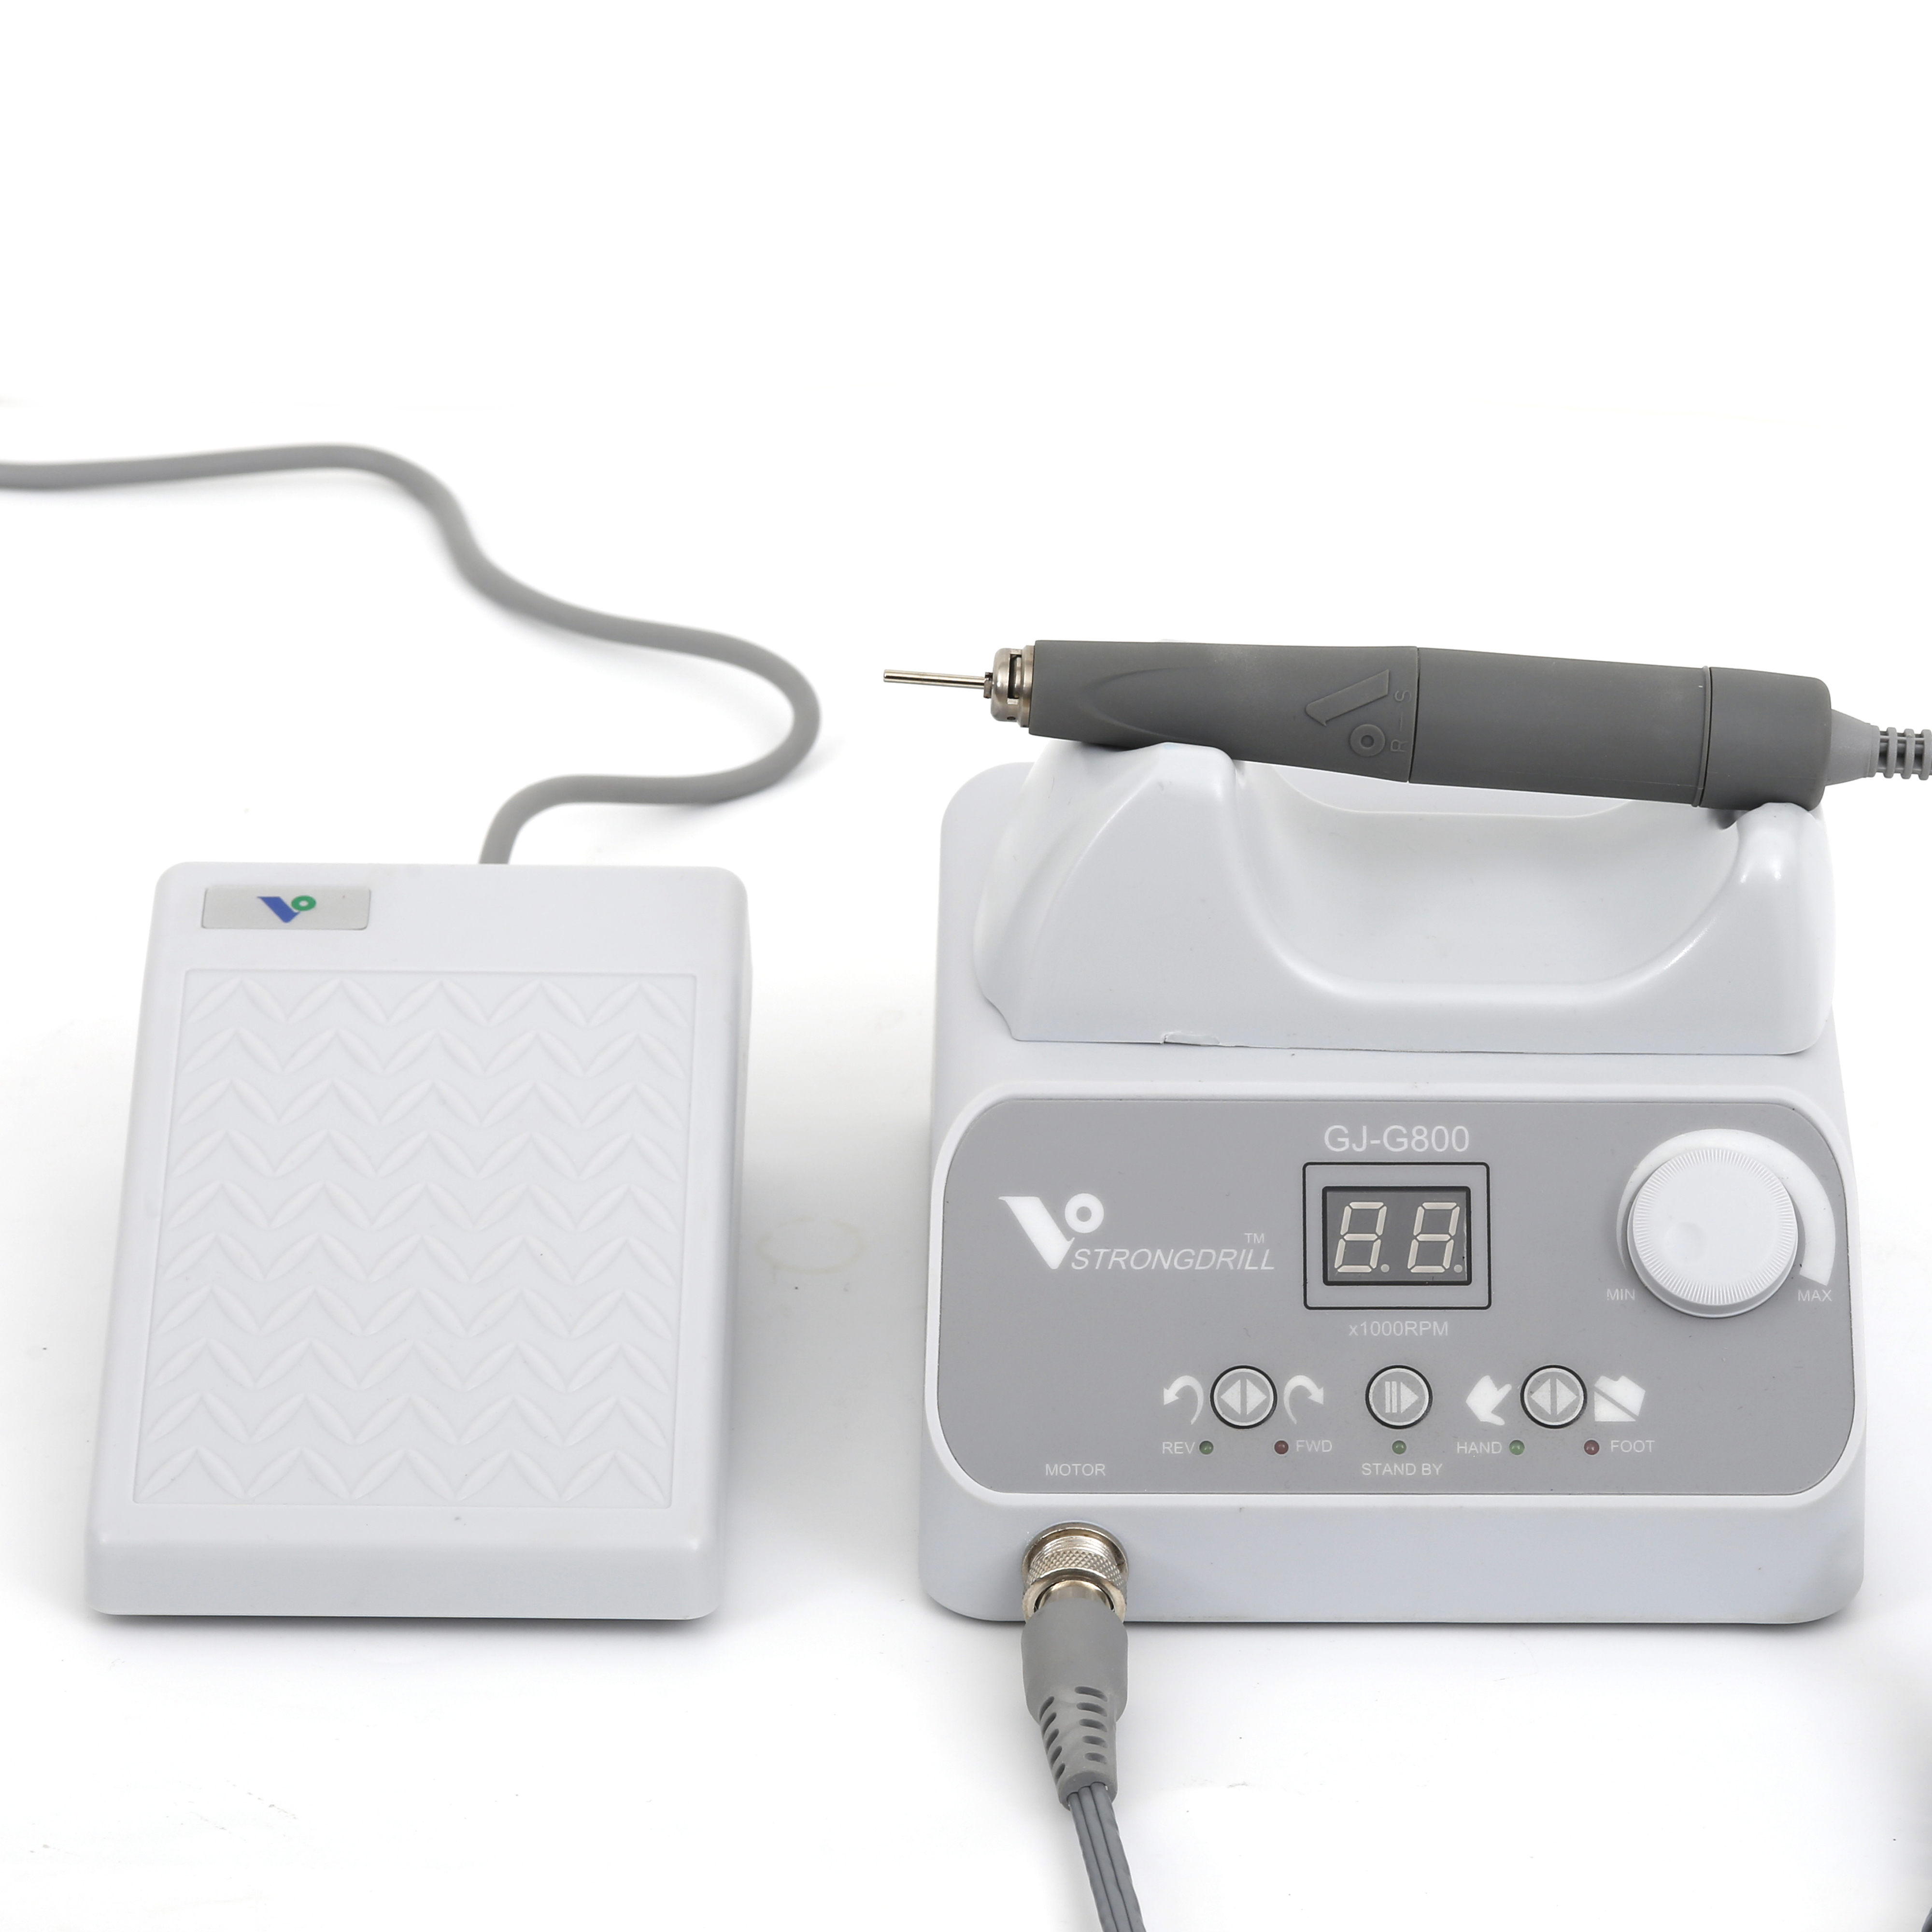 STRONG DRILL 50000 RPM brushless dental micromotor GJ G800 Teeth whitening dental lab micromotor with XM